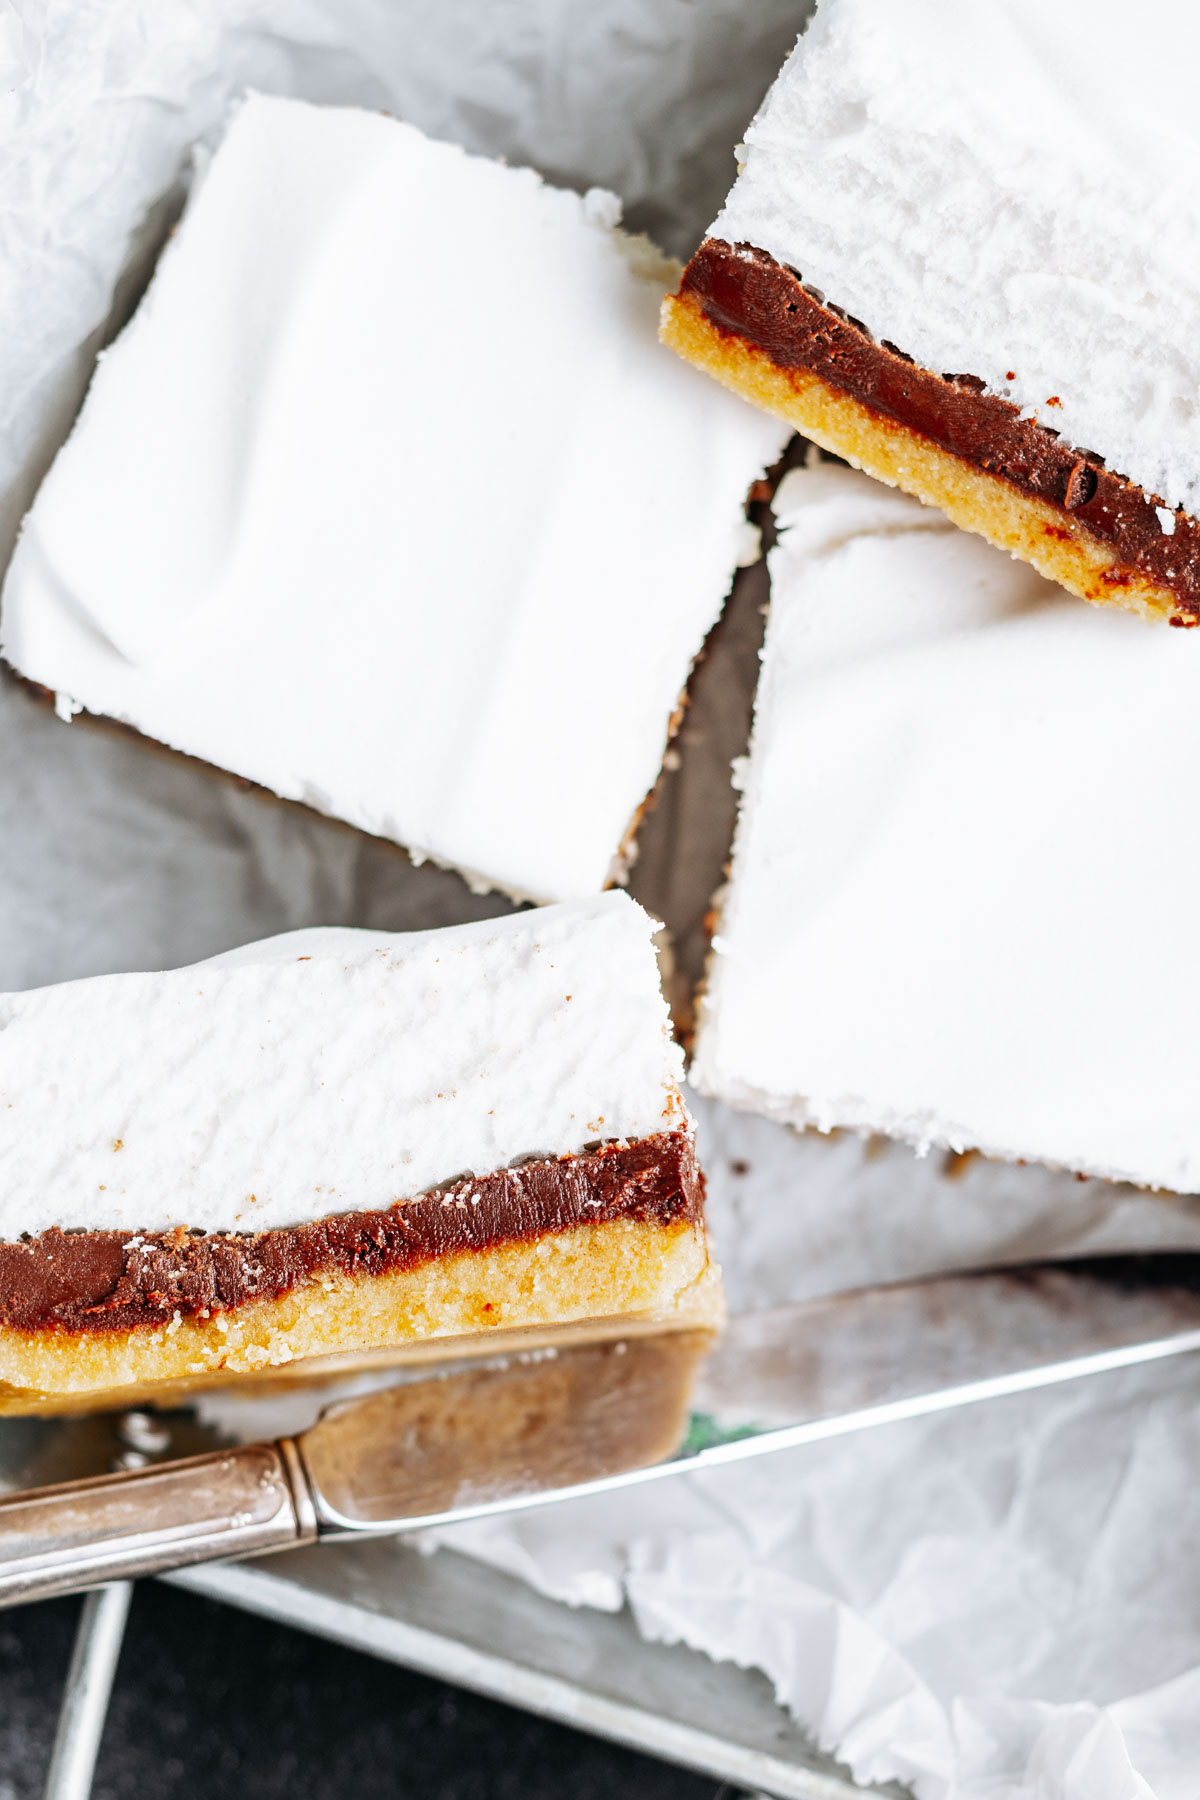 Keto S'mores Bars in a serving tray